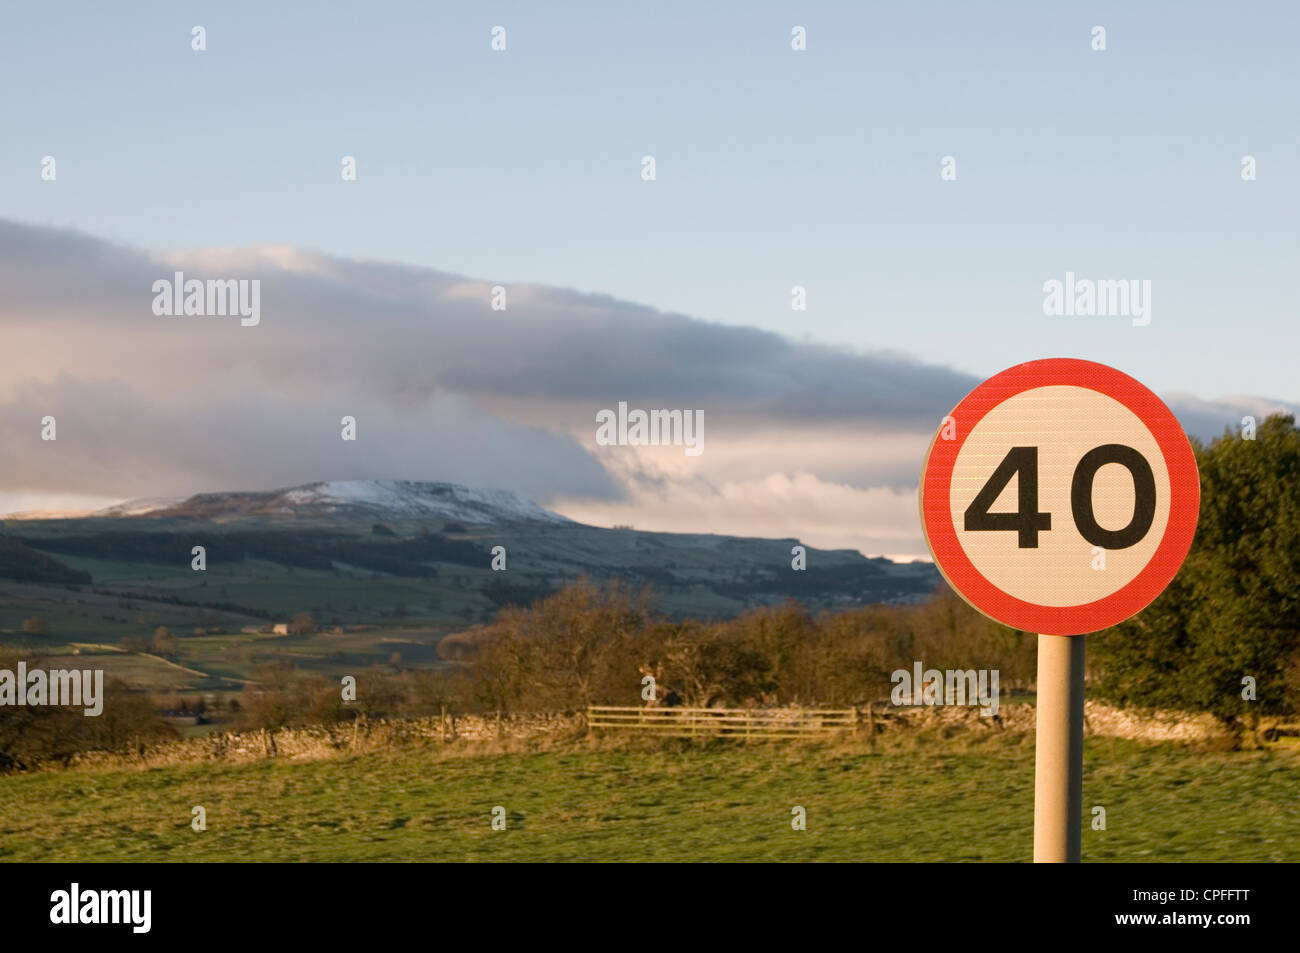 rural road roads speed limits limit country yorkshire dales speeding - Stock Image